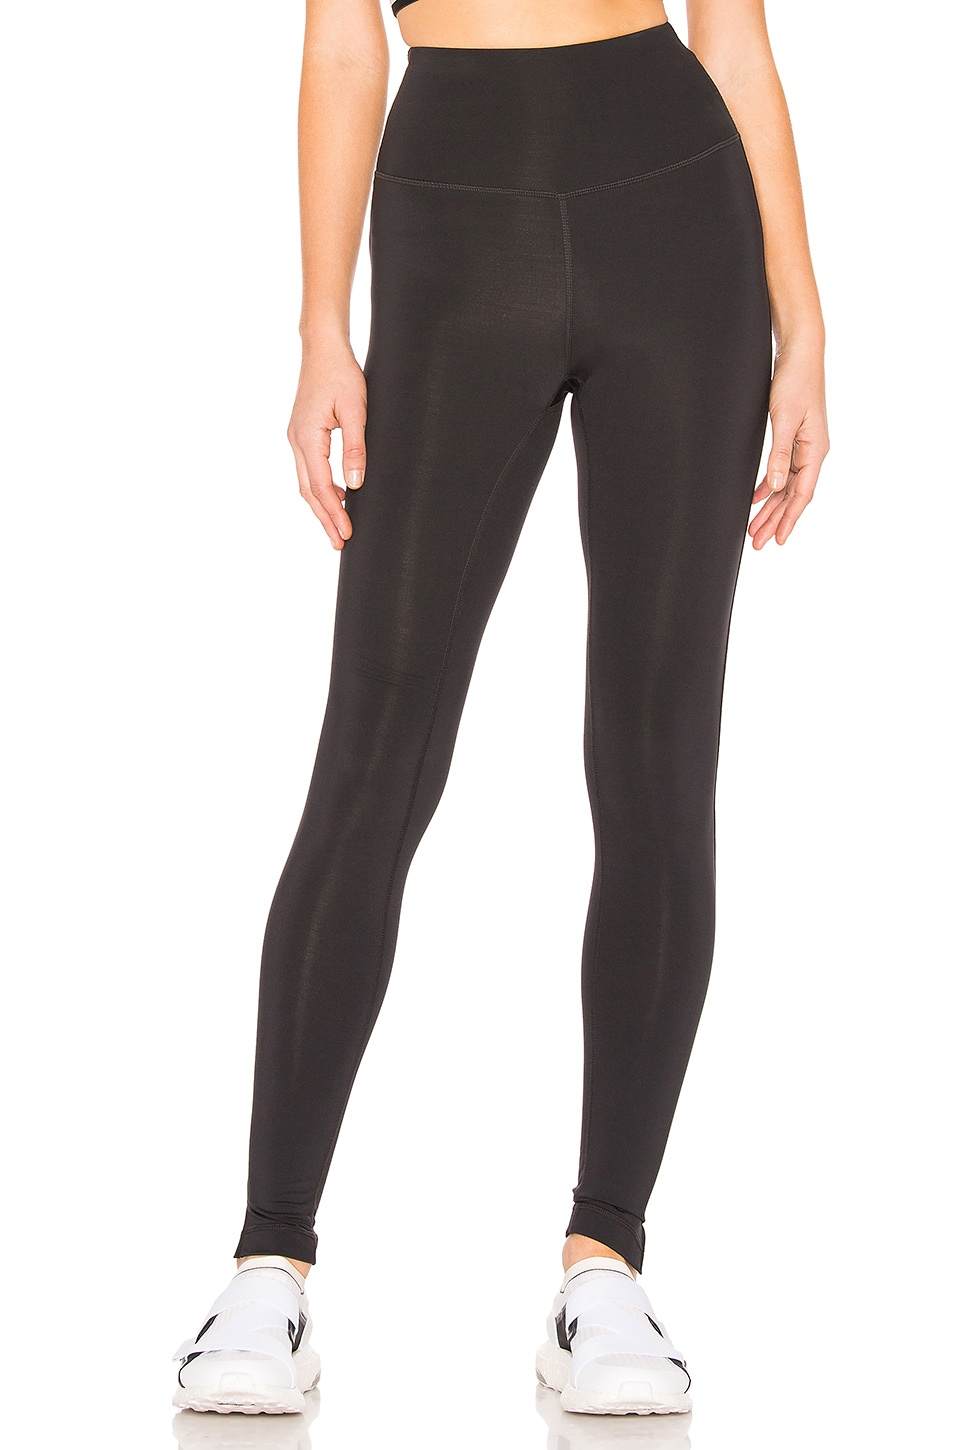 lukka lux Split Legging in Black Onyx